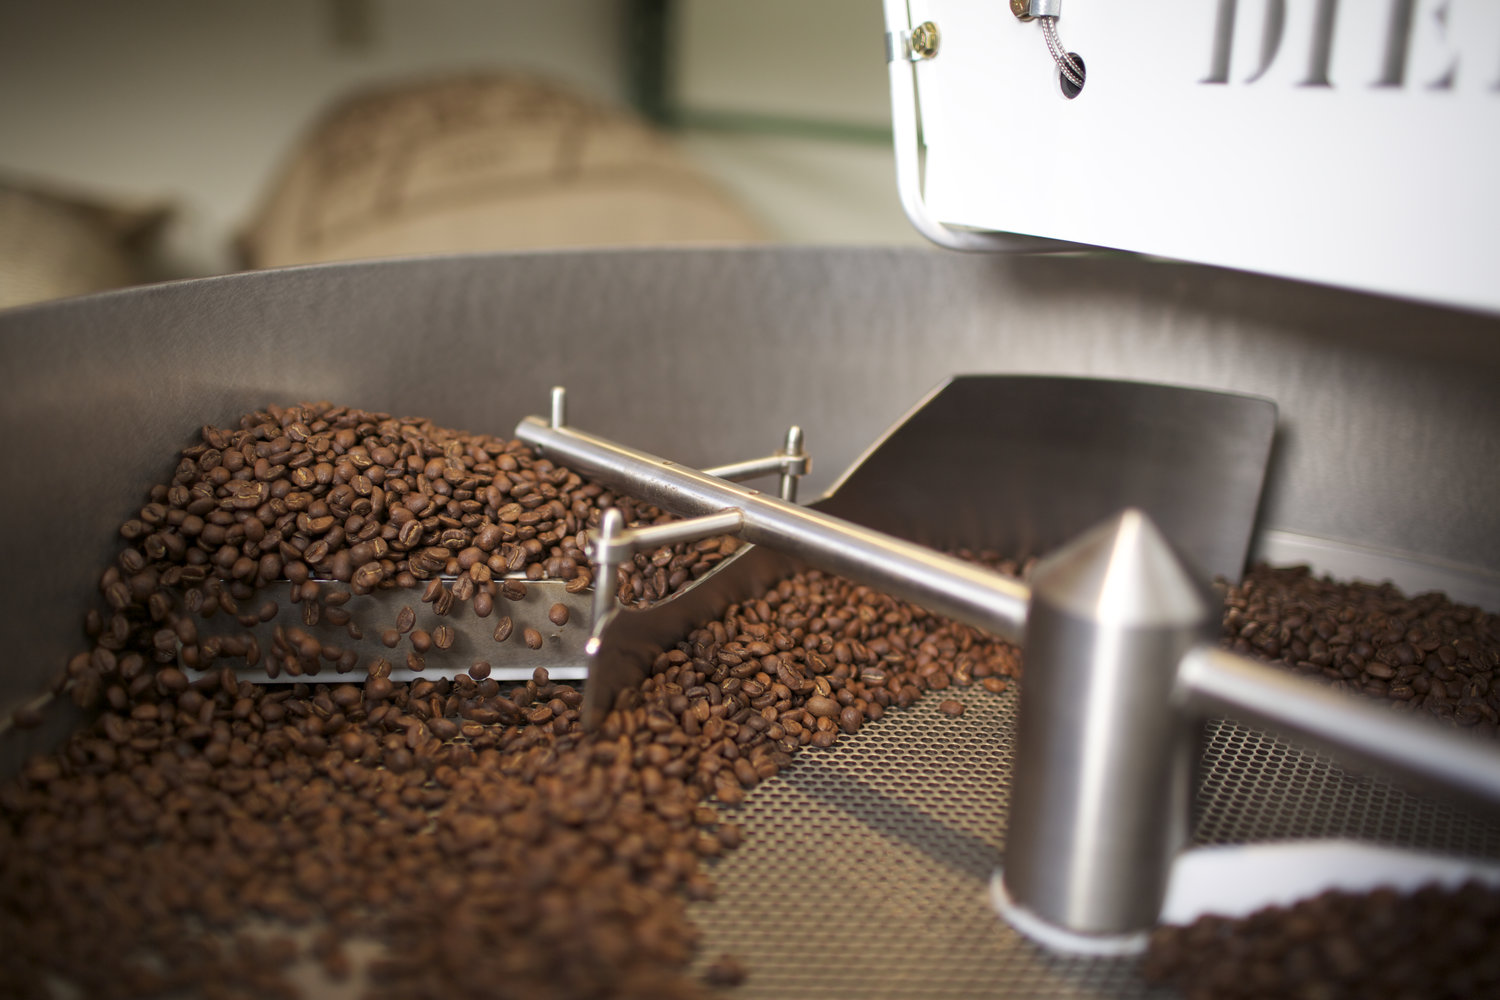 How is Matchless Coffee Soda® made? - We source the best, locally roasted coffee, brew it hot and flash-chill it, locking in the unique flavor of the crop. Unlike cold-brew methods, our coffee base's origin is fully expressed. It can even change slightly with the season.We add natural Demerara sugar and carbonate the entire mixture until it's reached its sweet, fizzy perfection. The result is a refreshingly simple new way to enjoy coffee.